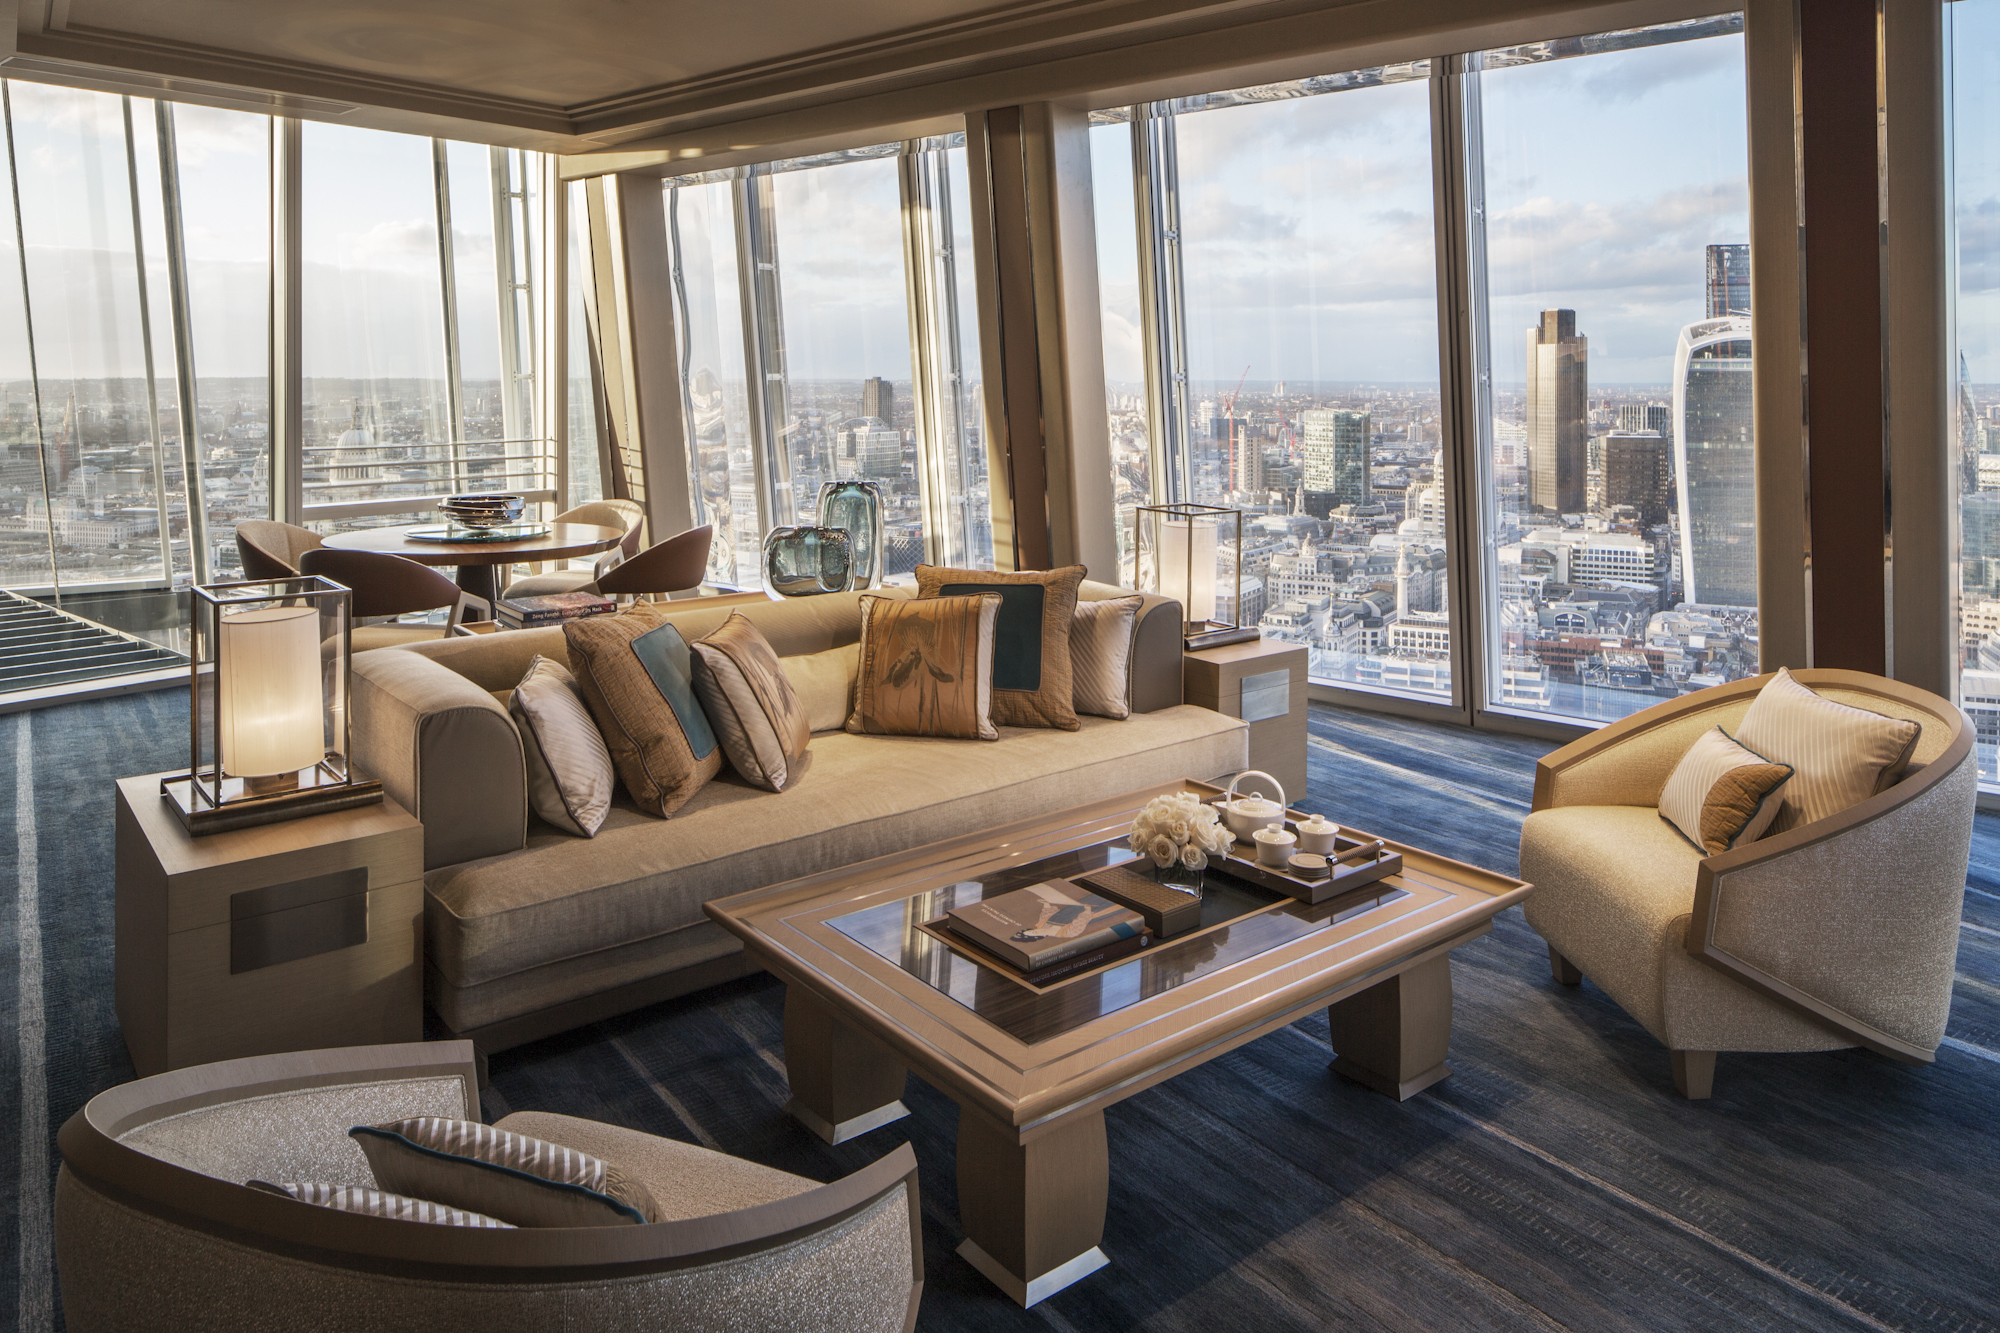 Luxus Wohnung In London | Best Of 2015 Shangri La At The Shard London Drivers Club Germany